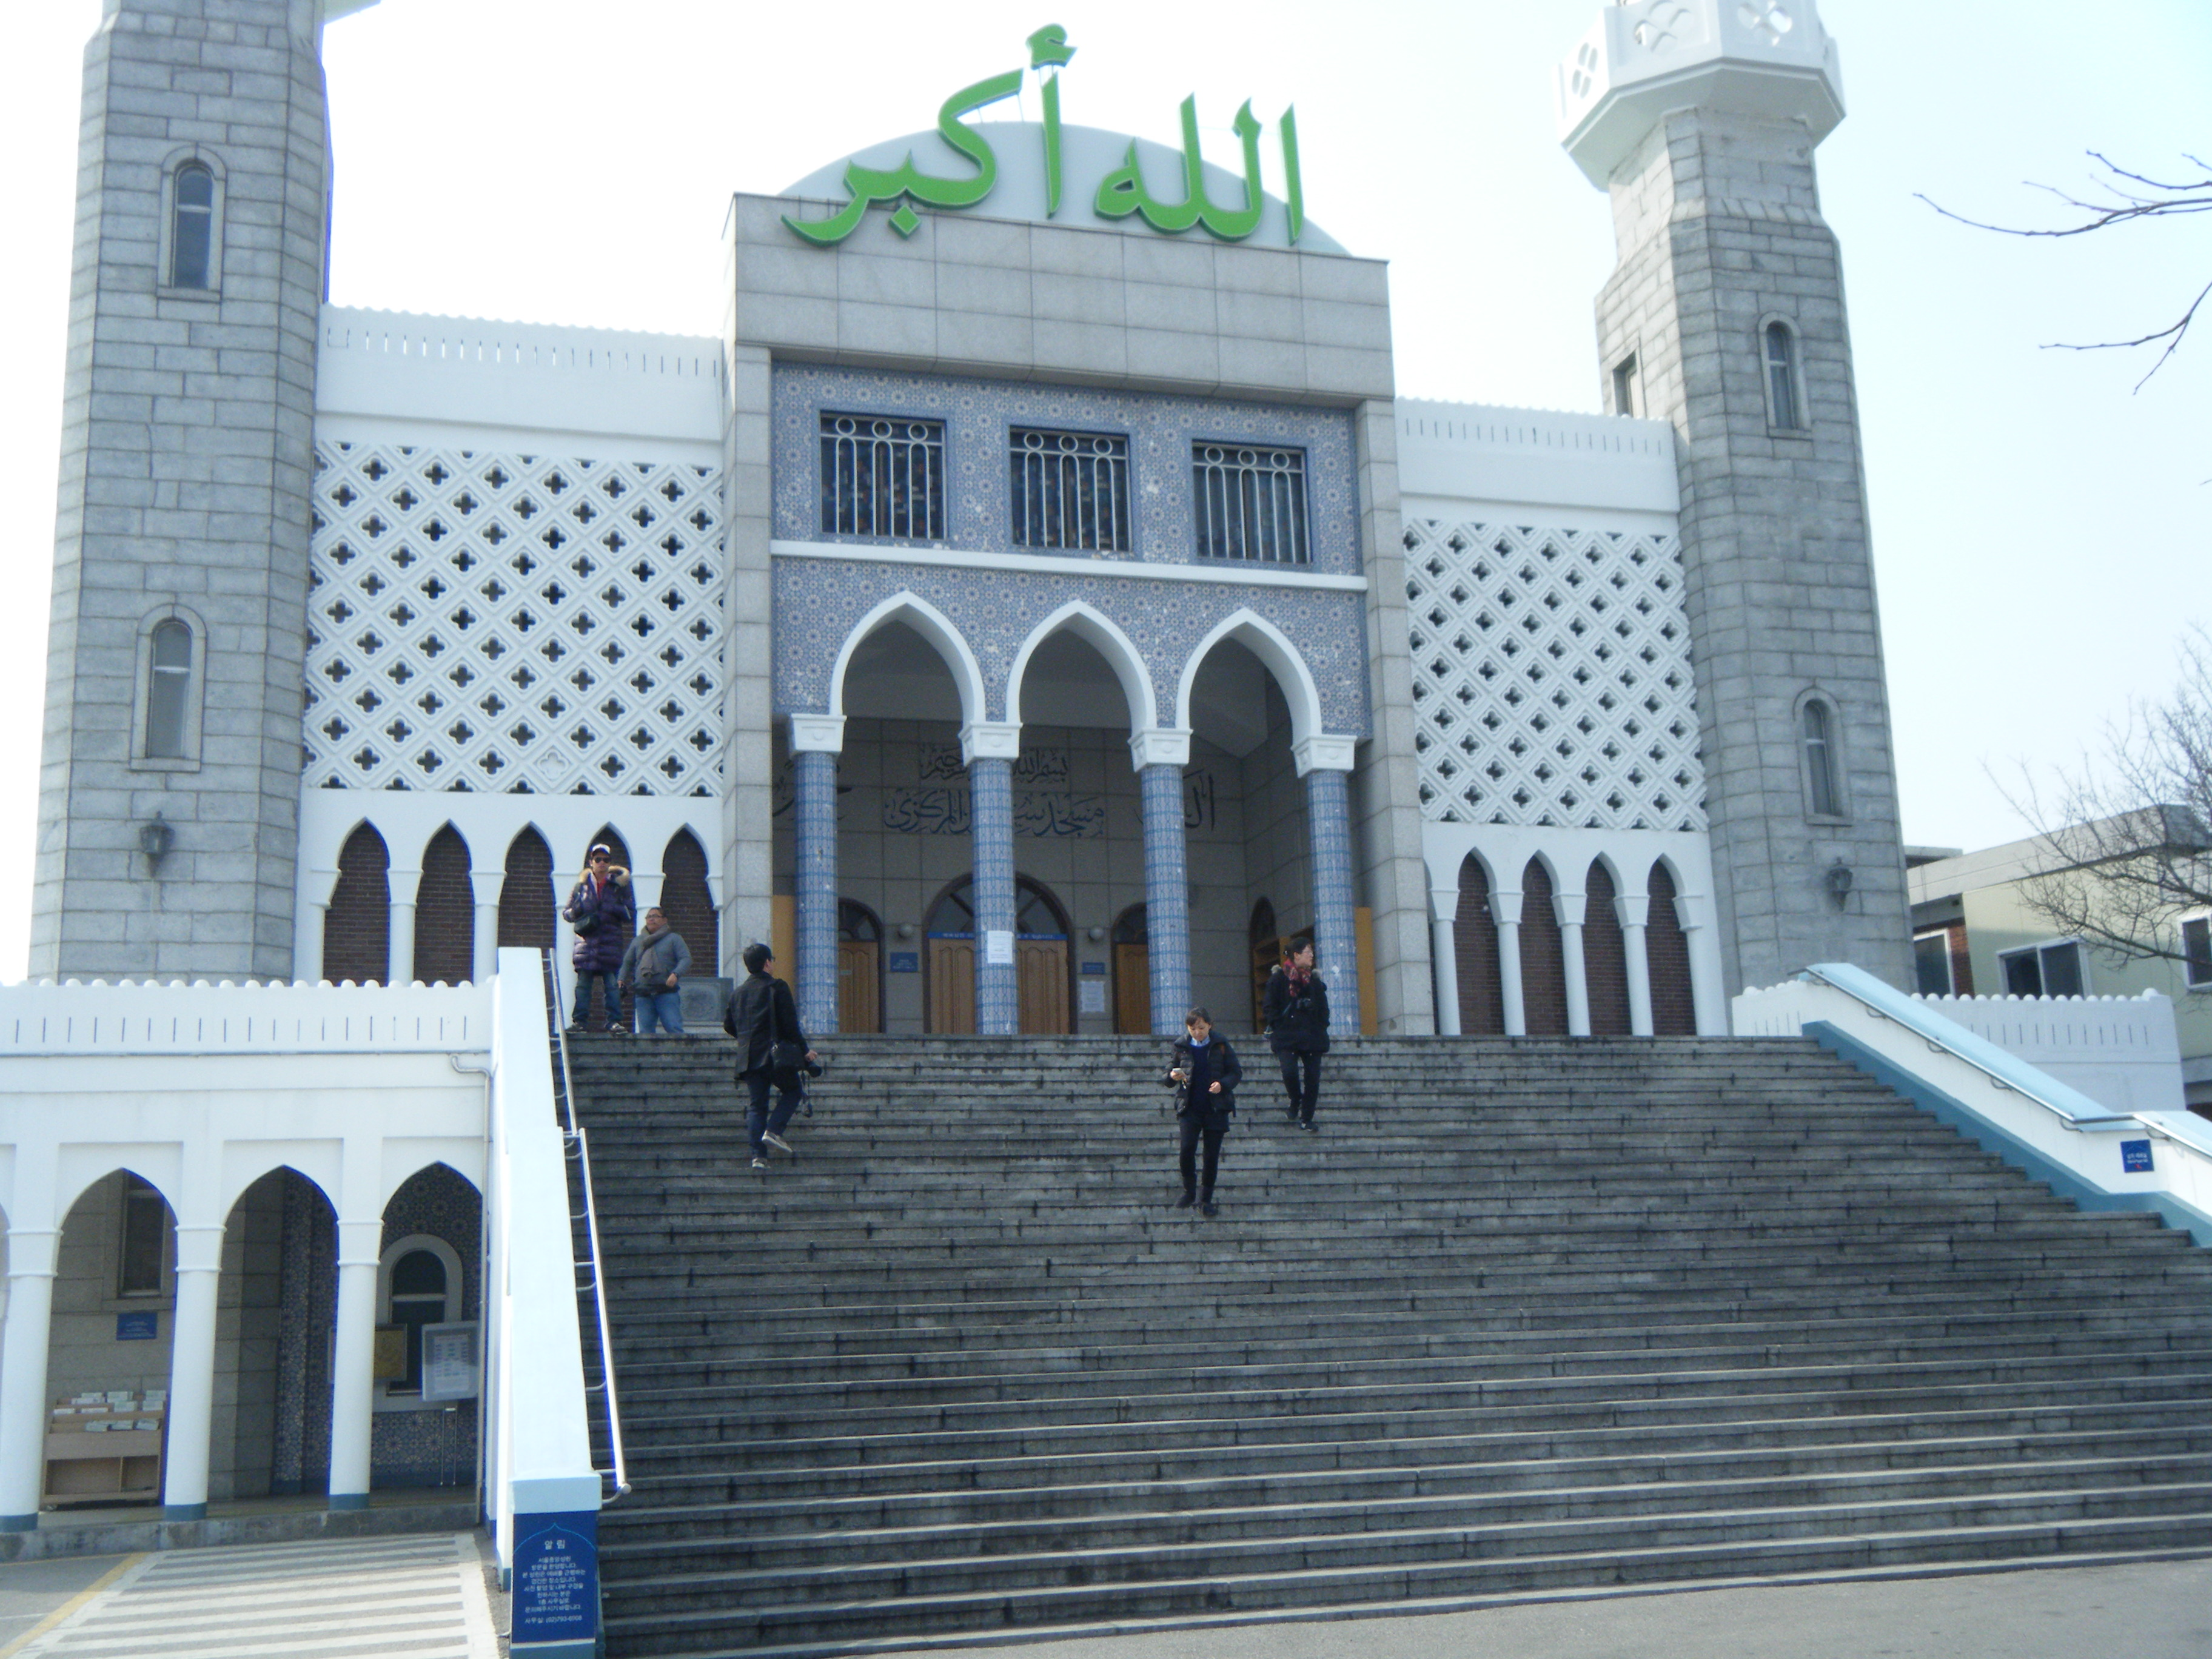 8 BIG MOSQUE IN SOUTH KOREA